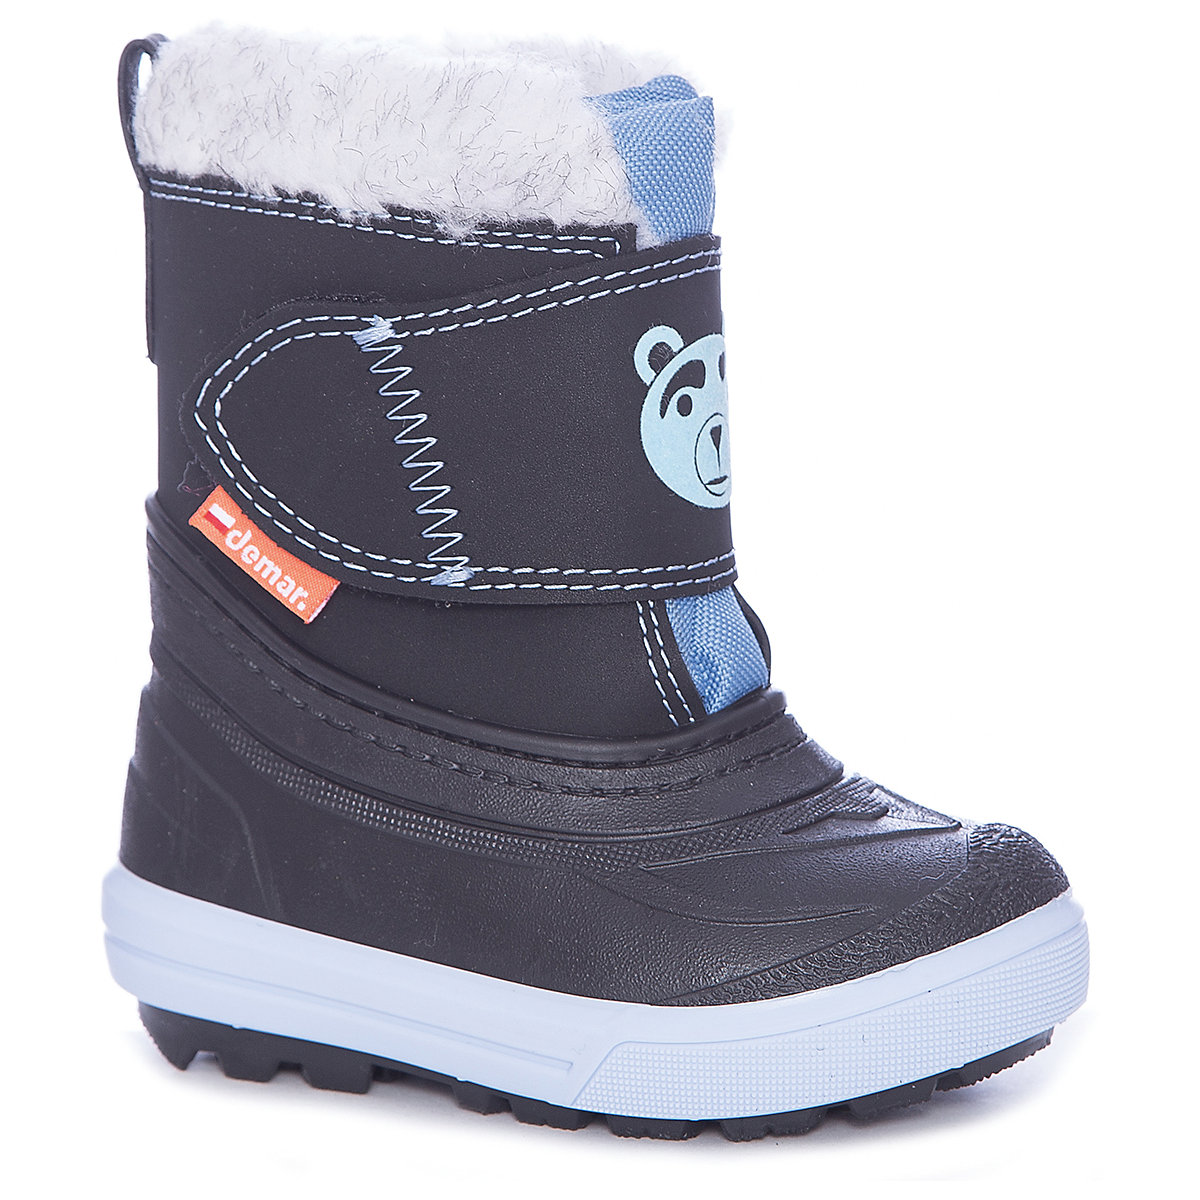 Boots Demar For Boys 7134868 Valenki Uggi Winter Baby Kids Children Shoes MTpromo